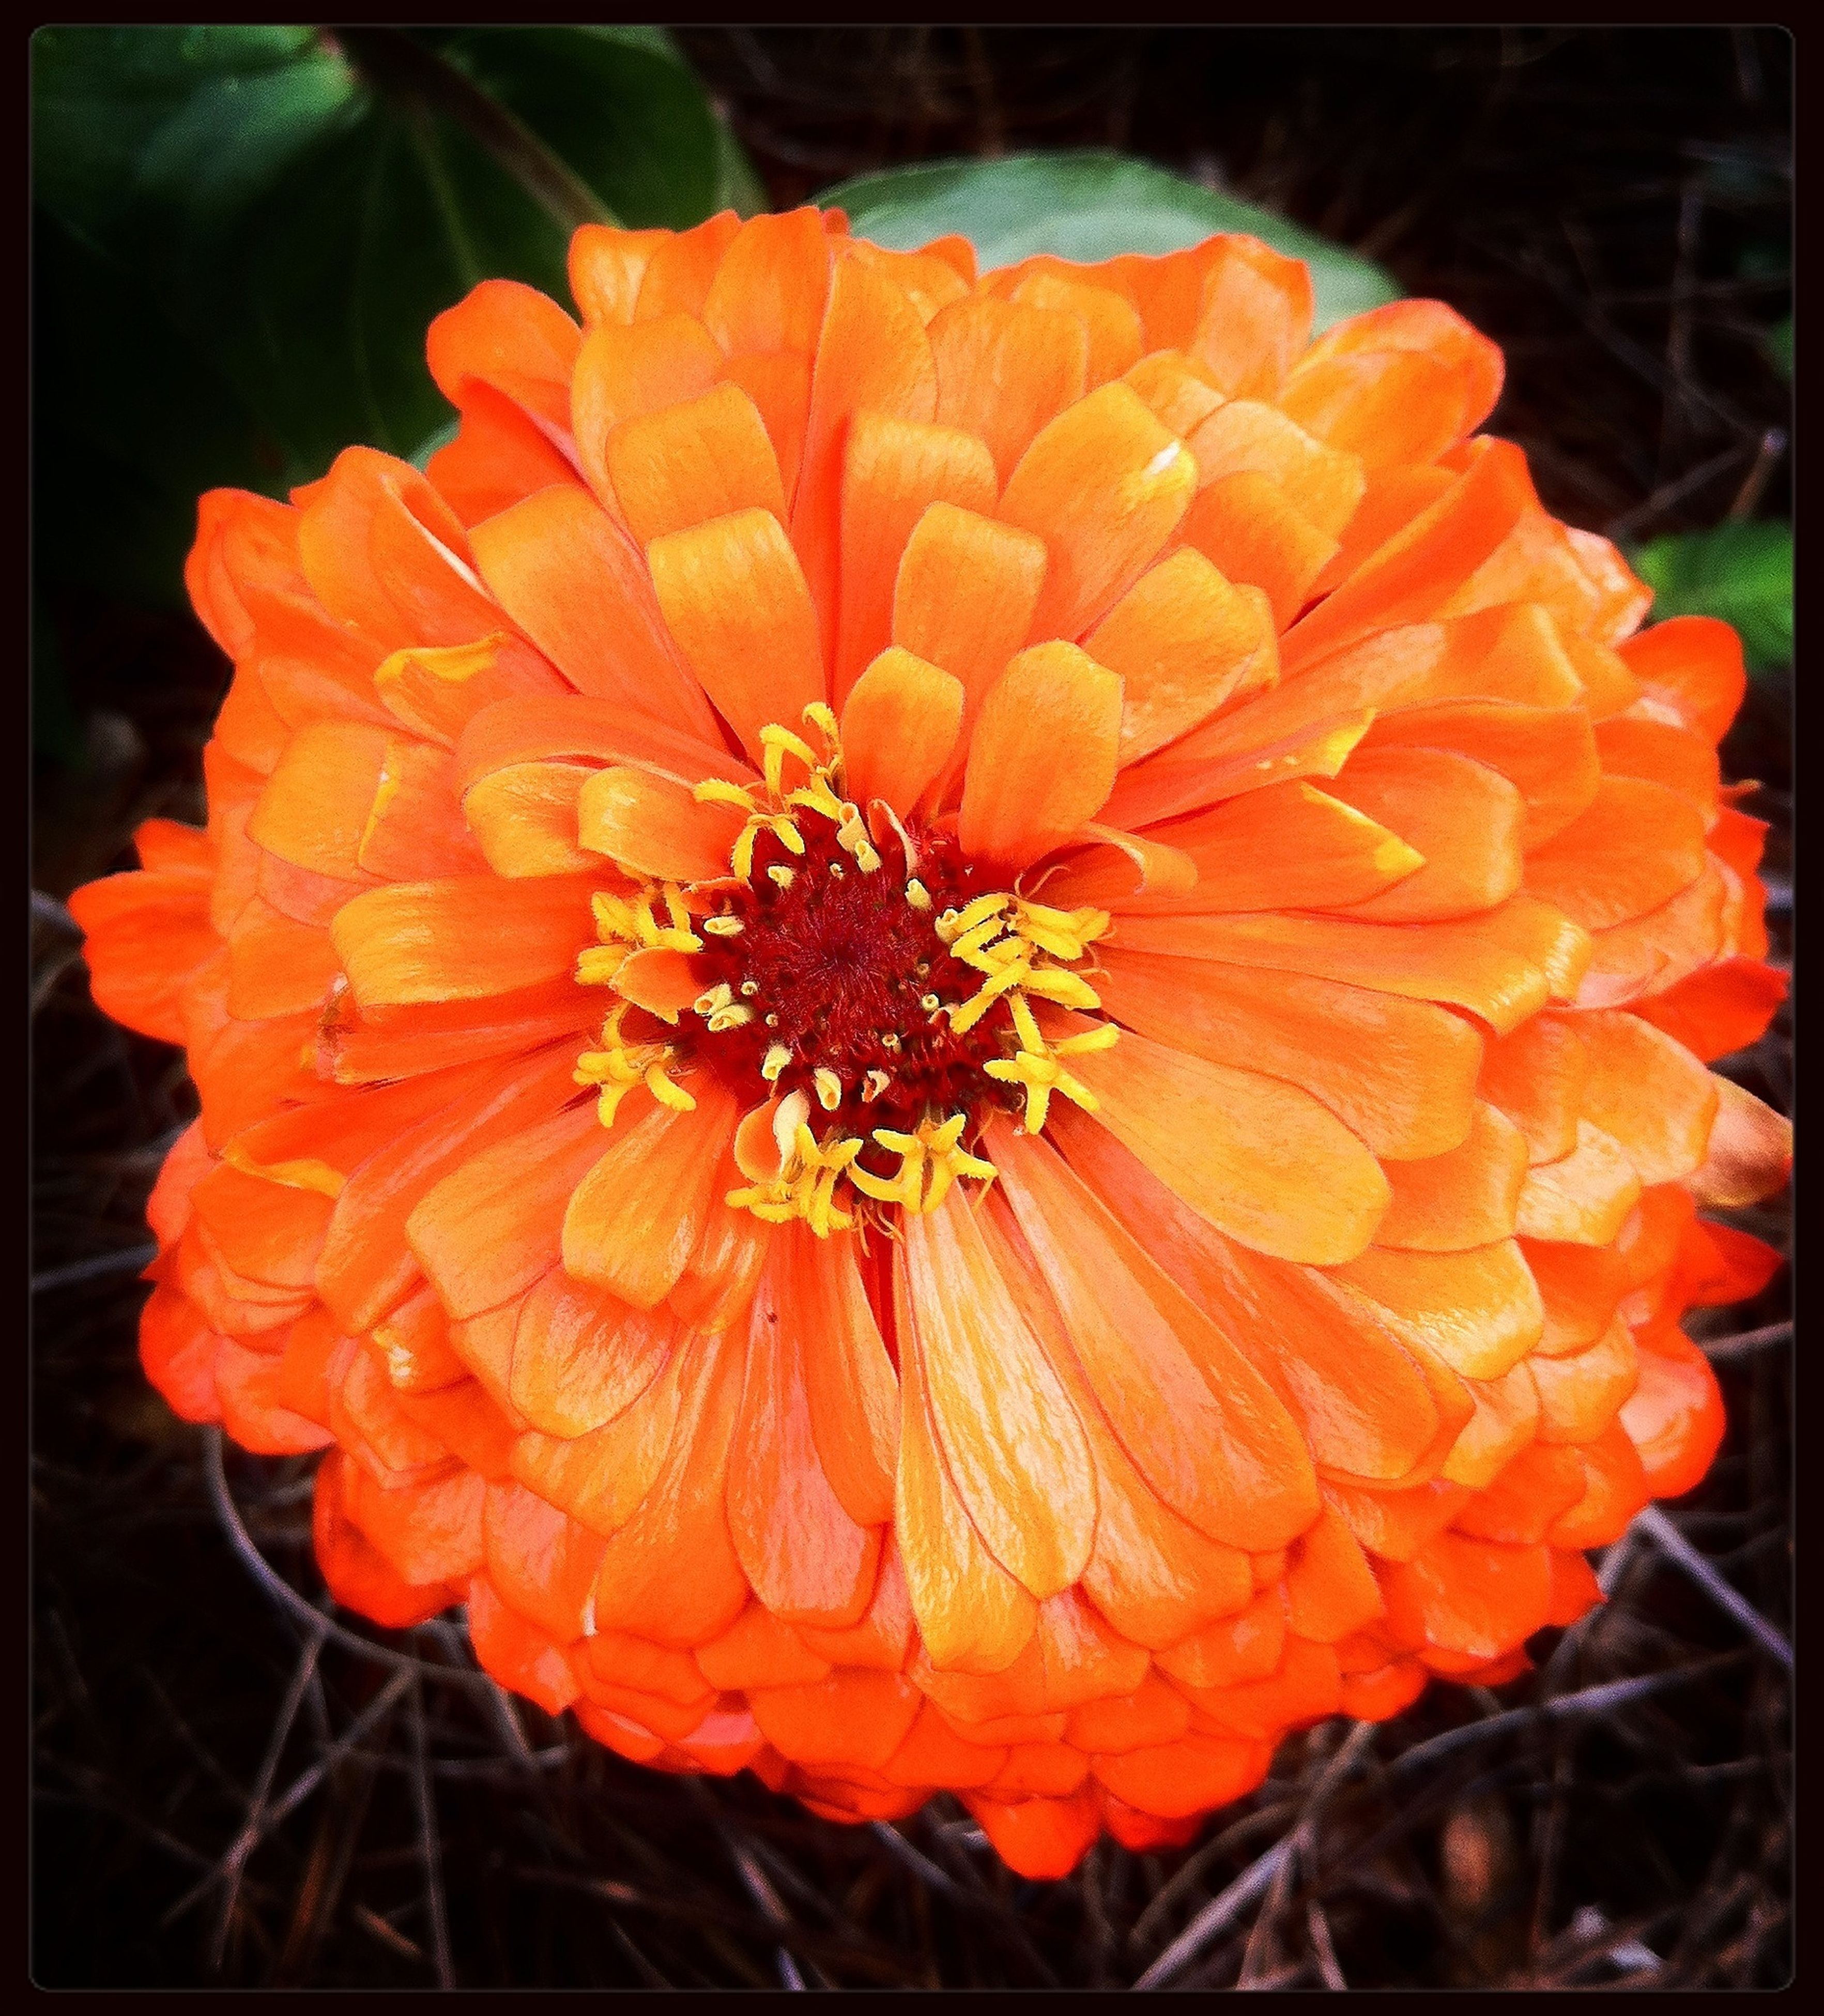 flower, petal, flower head, freshness, fragility, close-up, orange color, beauty in nature, single flower, growth, blooming, pollen, nature, red, focus on foreground, transfer print, auto post production filter, plant, stamen, in bloom